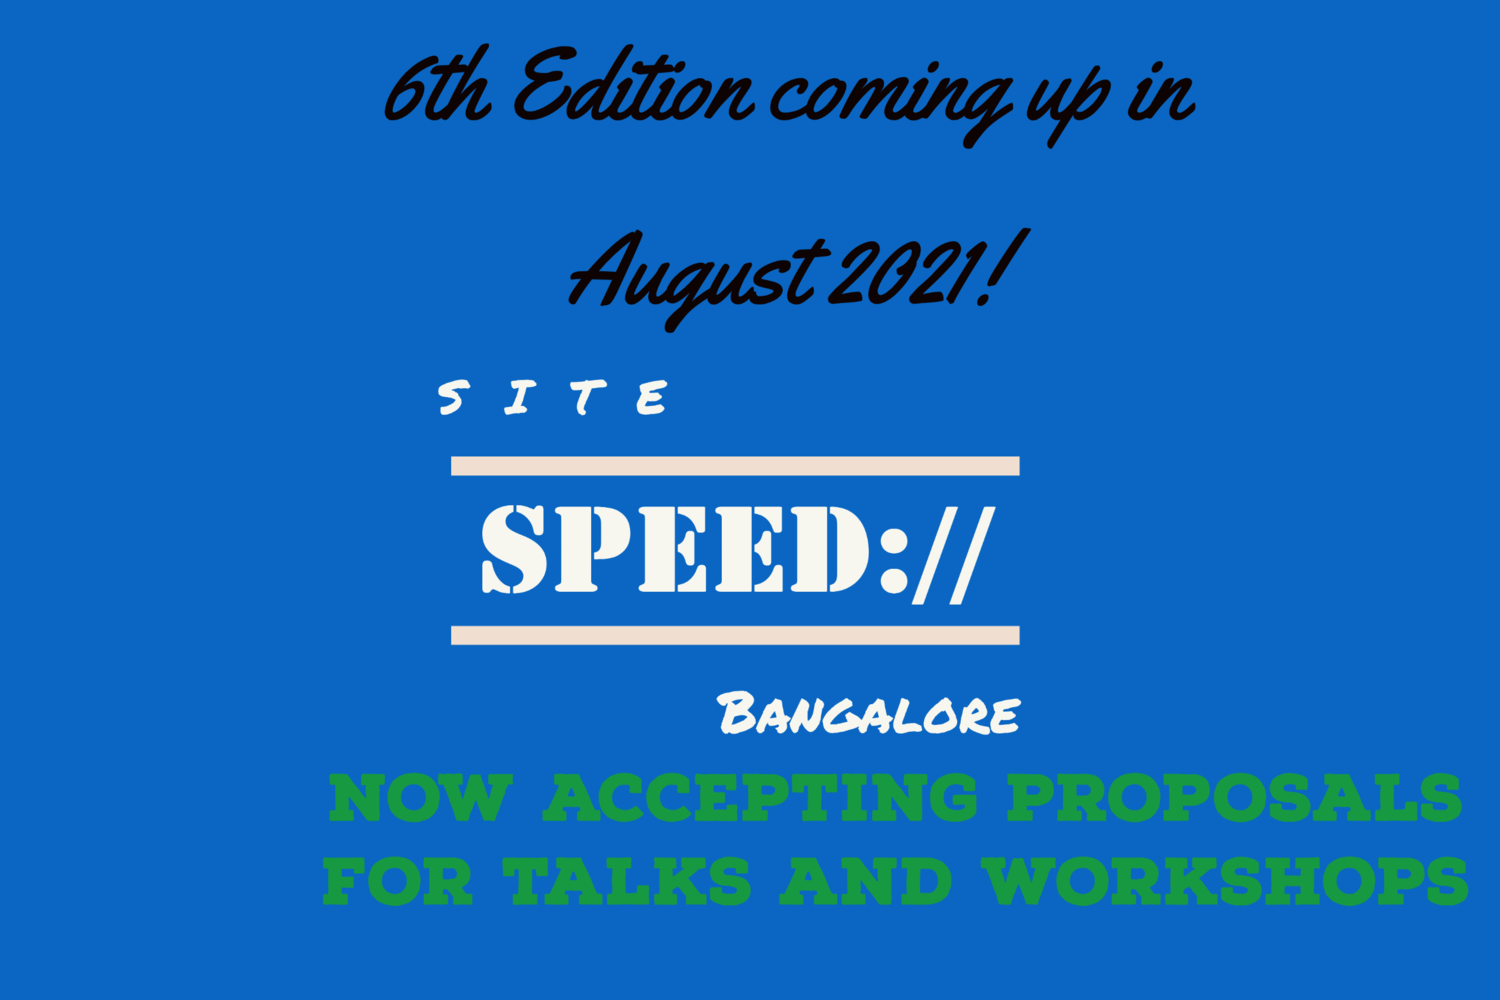 Bangalore Site Speed 6th Edition